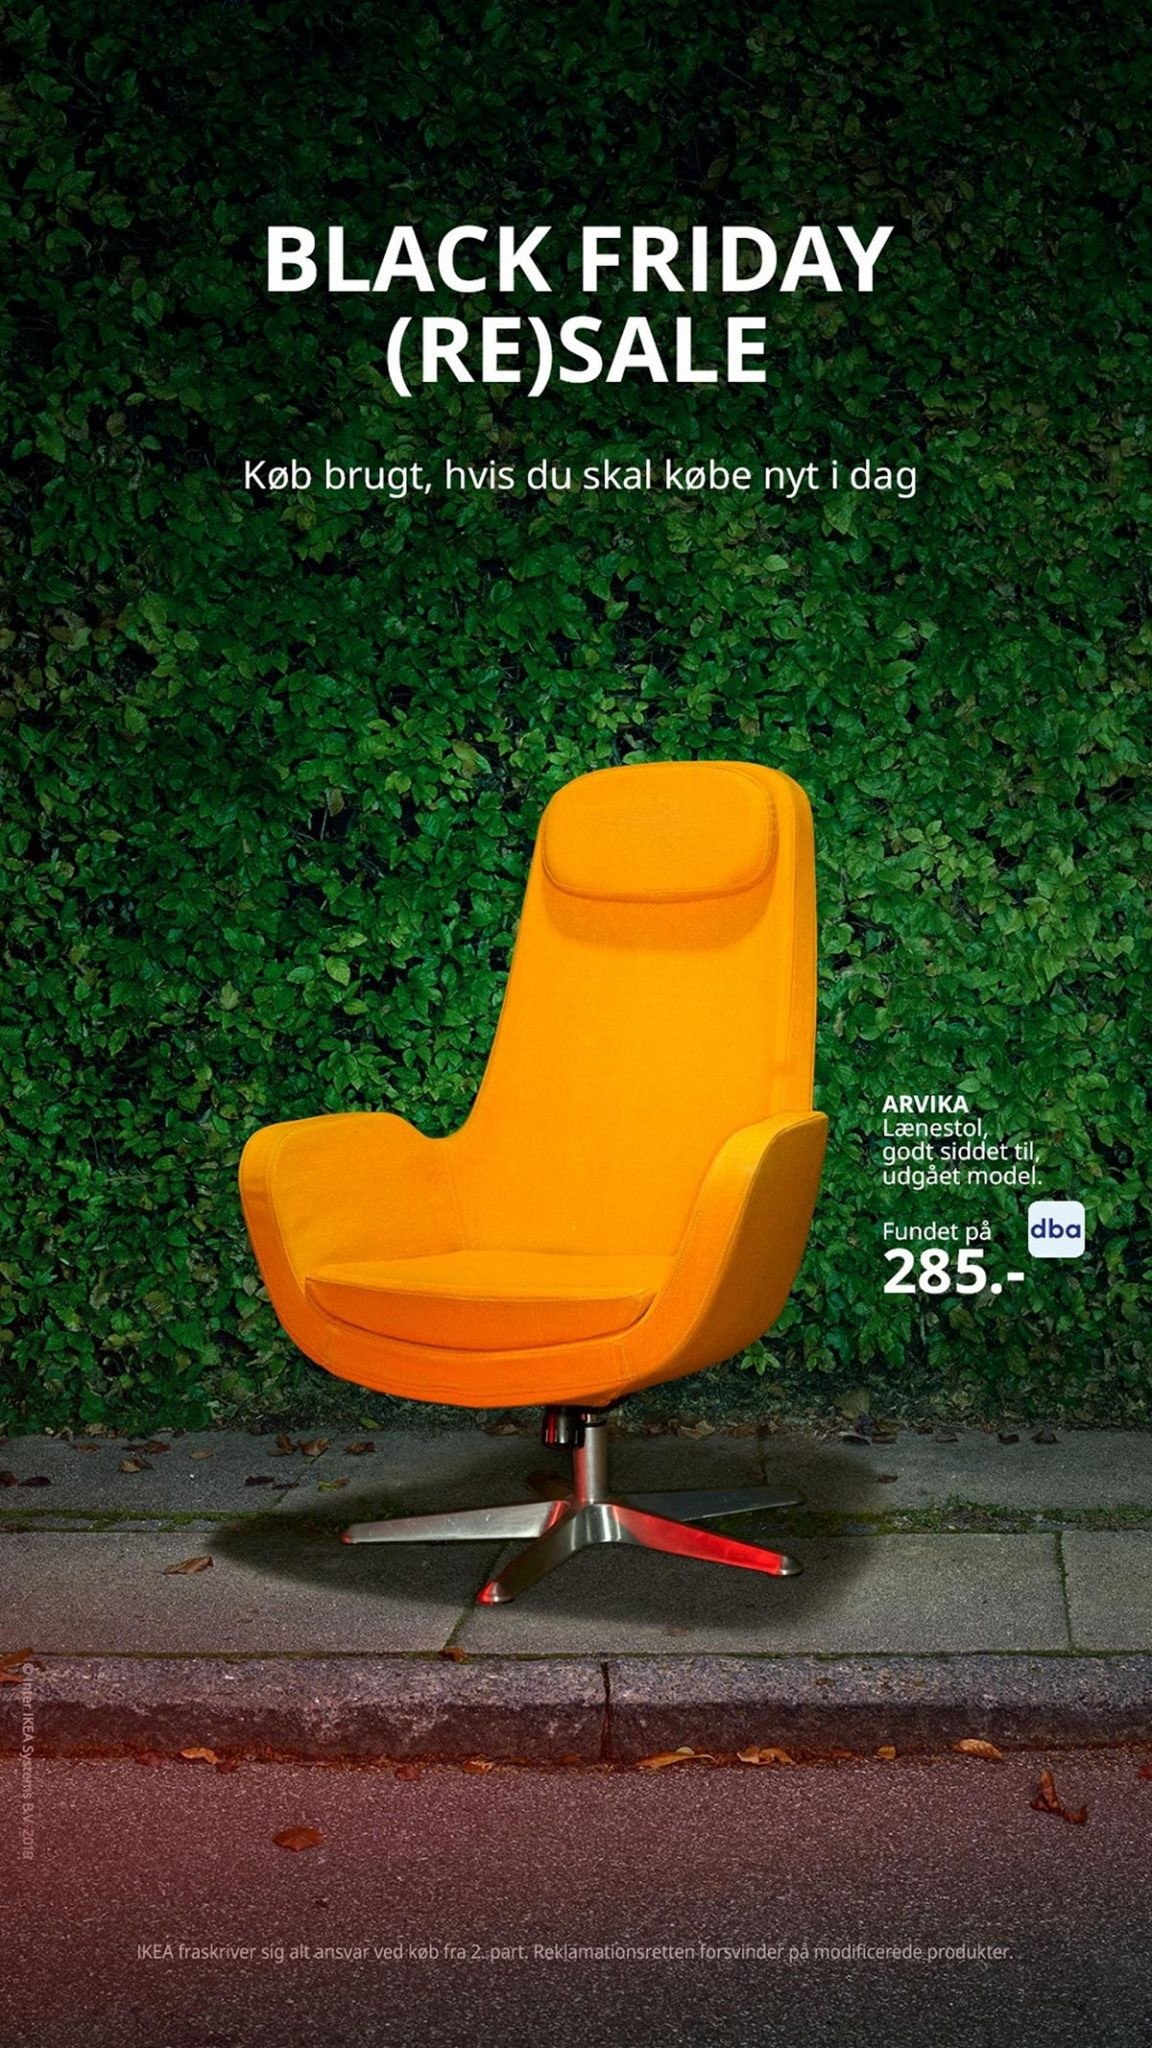 IKEA vinder kommunikationspris for omvendt Black Friday-kampagne 1